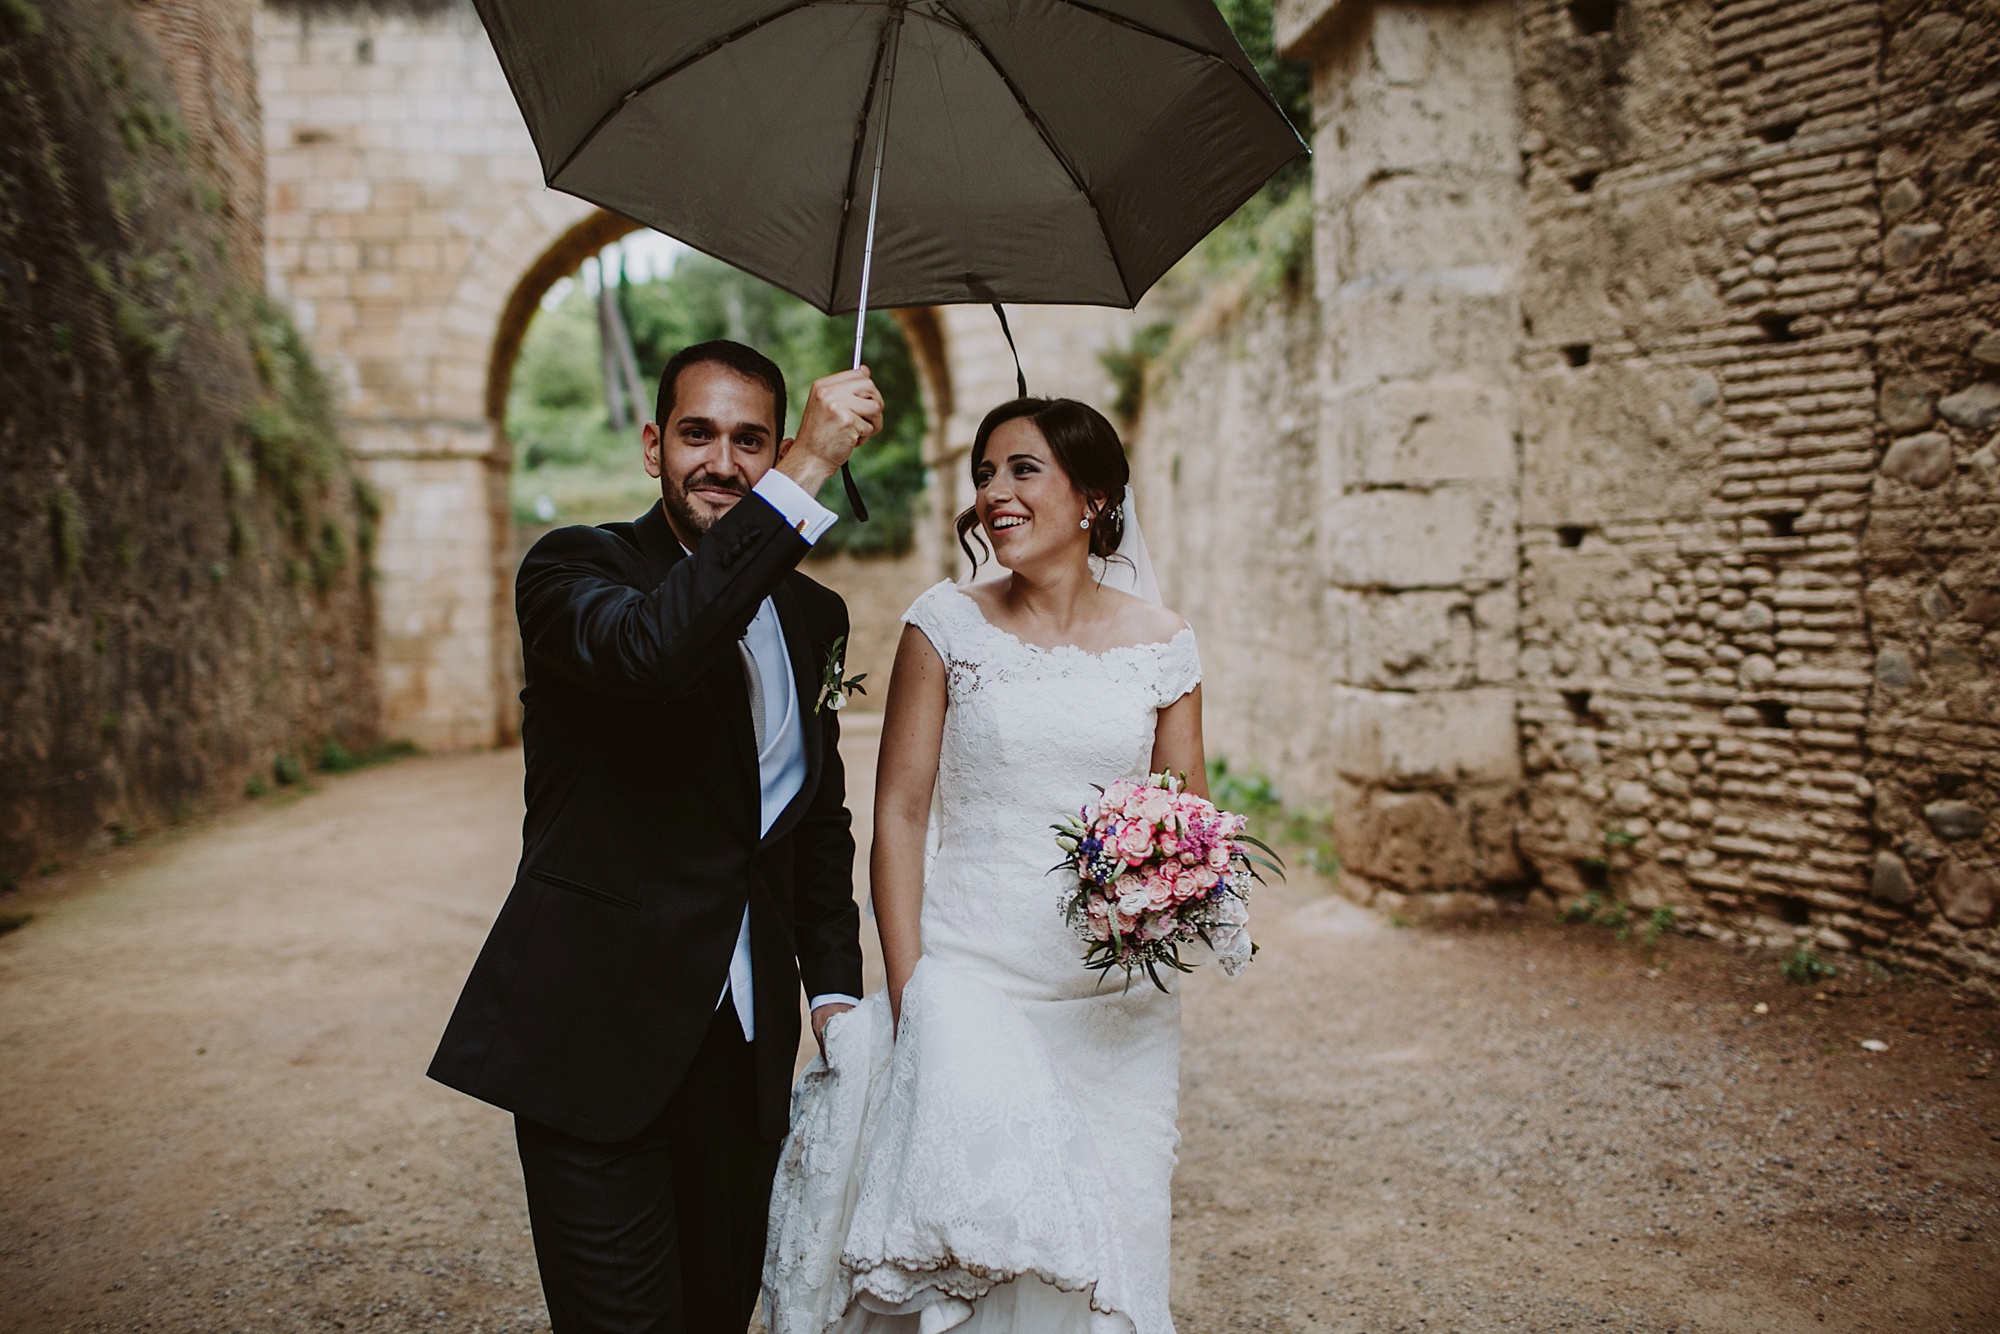 rainy wedding day granada